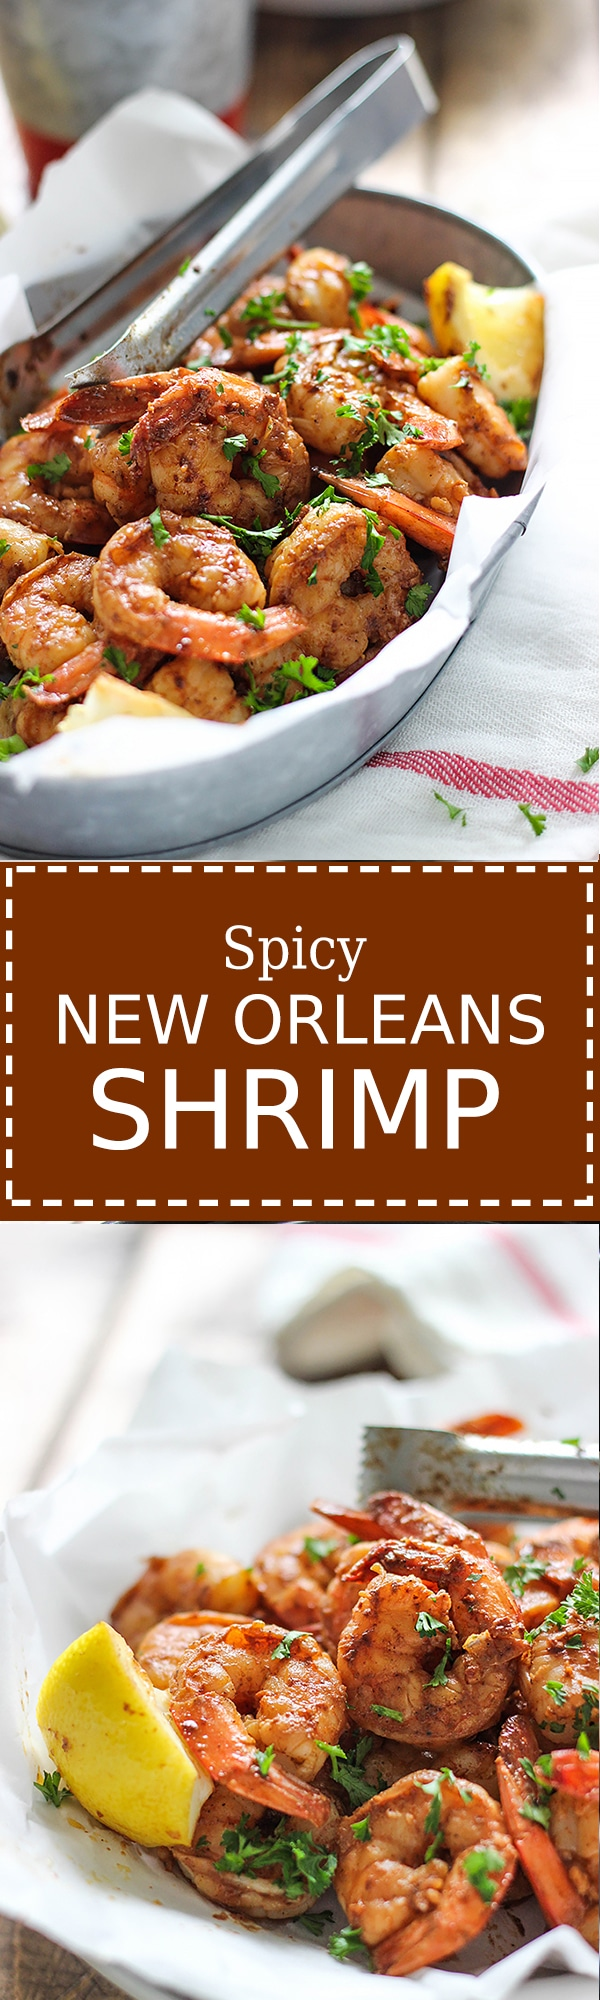 Spicy New Orleans Style Shrimp The Cooking Jar